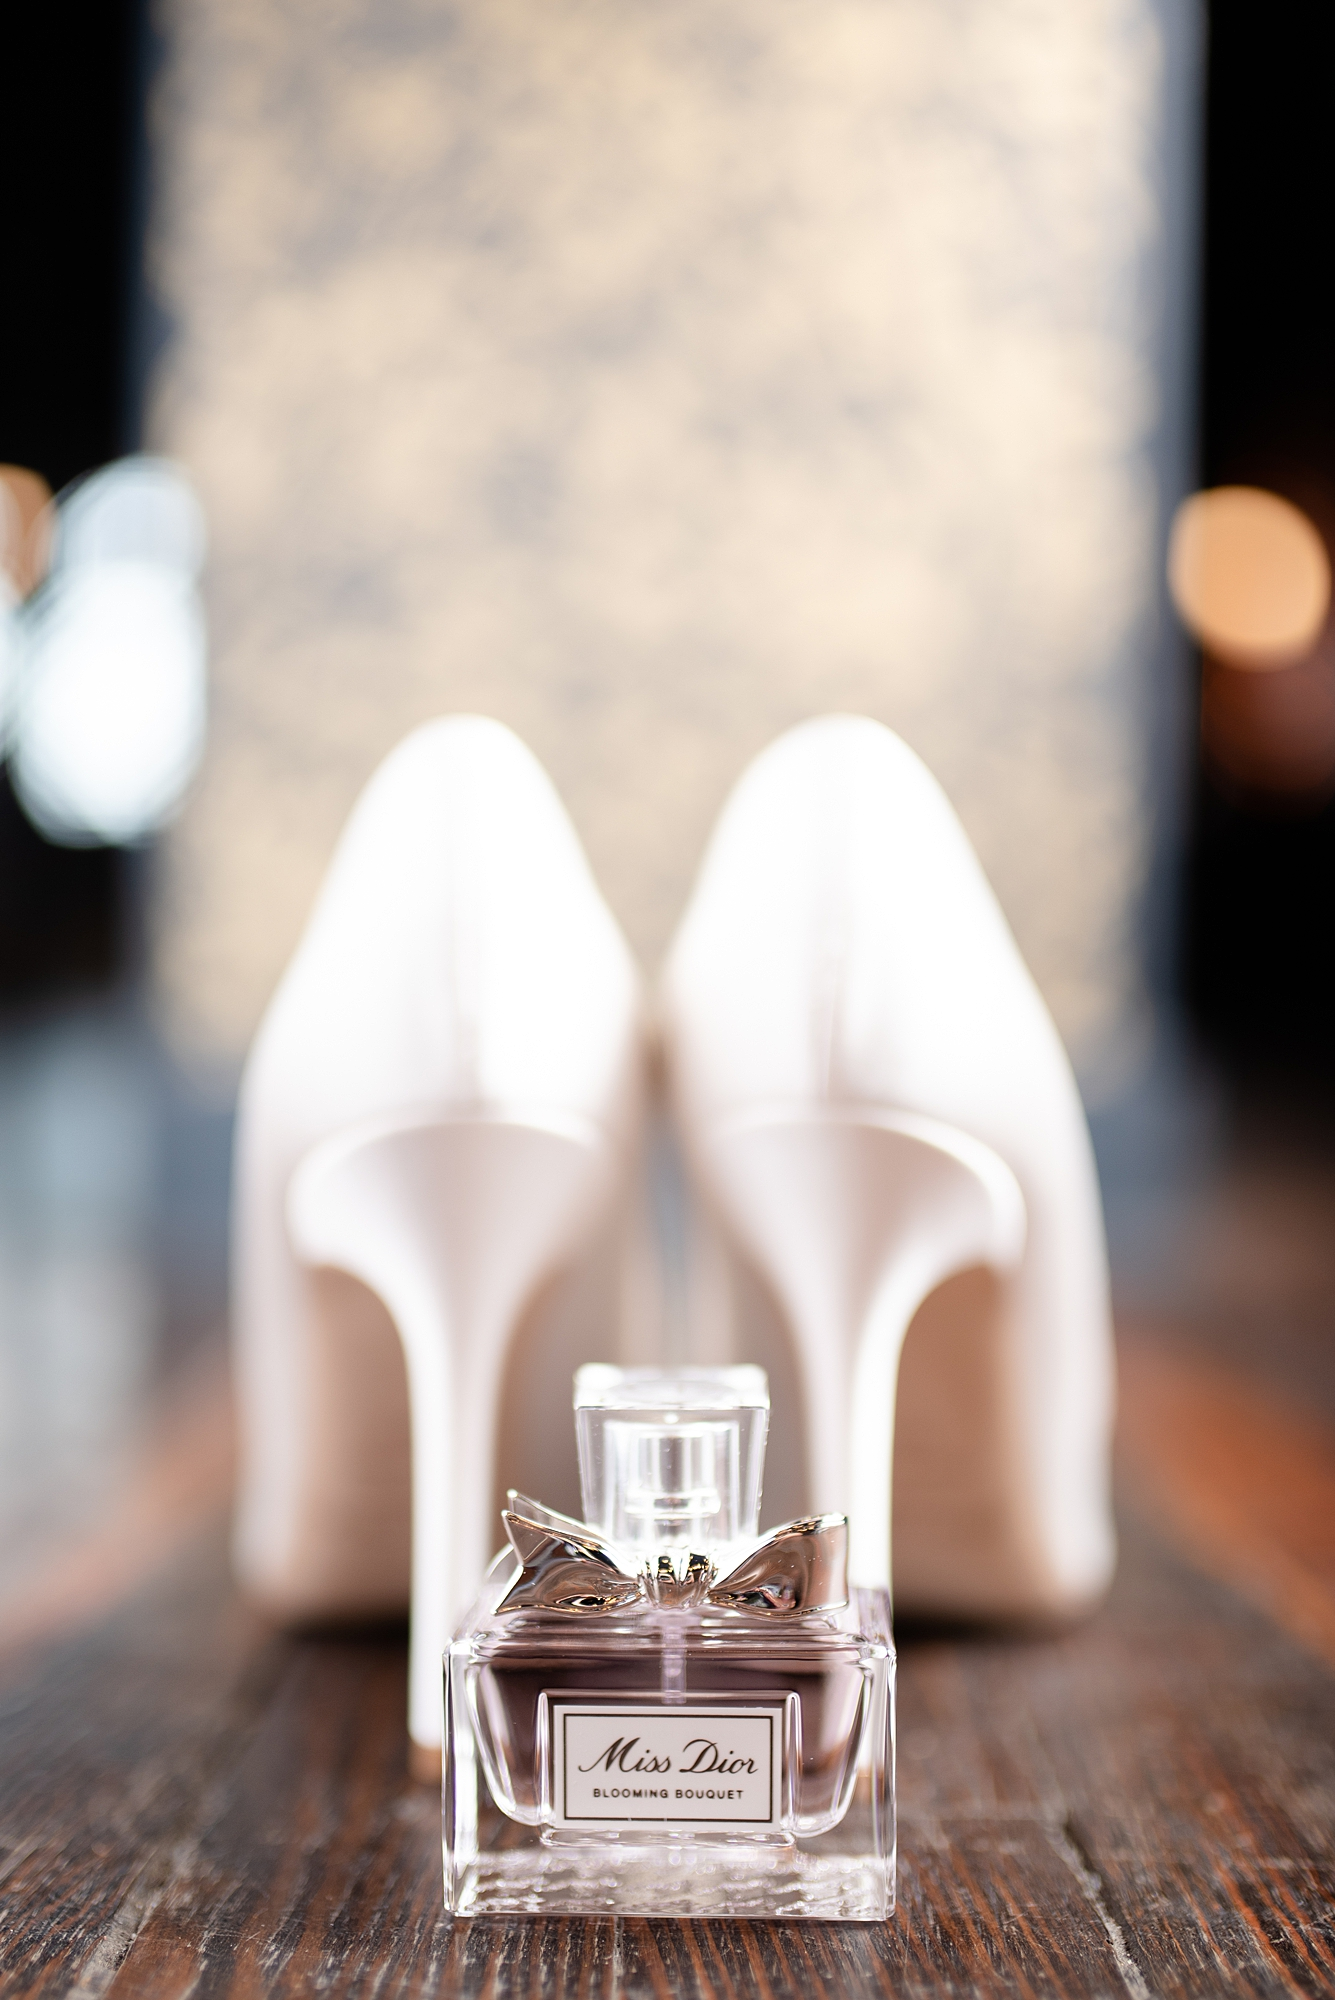 Jimmy Choo Wedding Shoes: Modern and Southern Wedding at the Clementine featured on Nashville Bride Guide